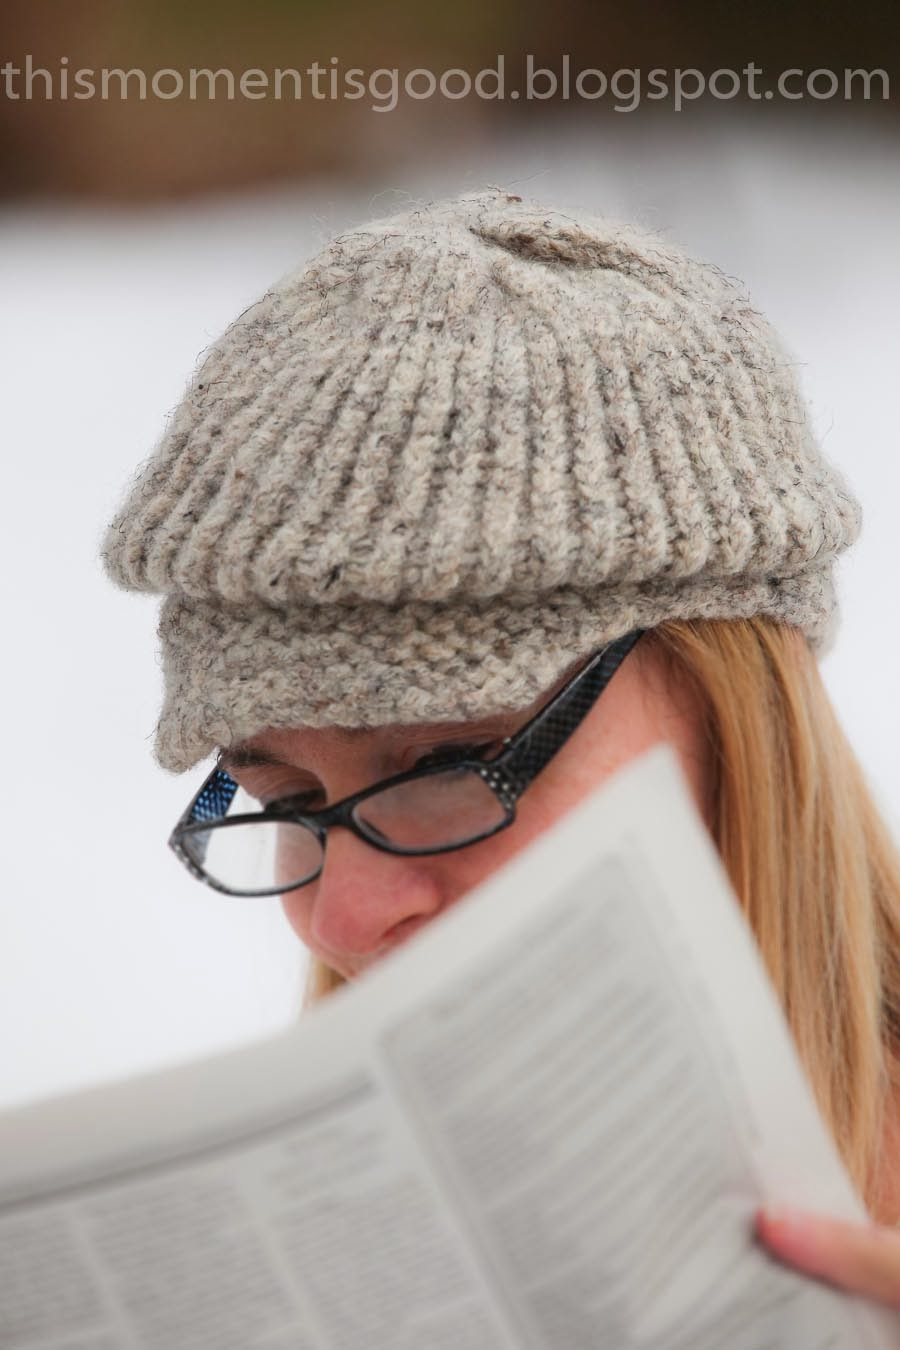 Knitting Loom Hat Stitches : Loom Knitting by This Moment is Good!: LOOM KNIT FELTED NEWSBOY HAT